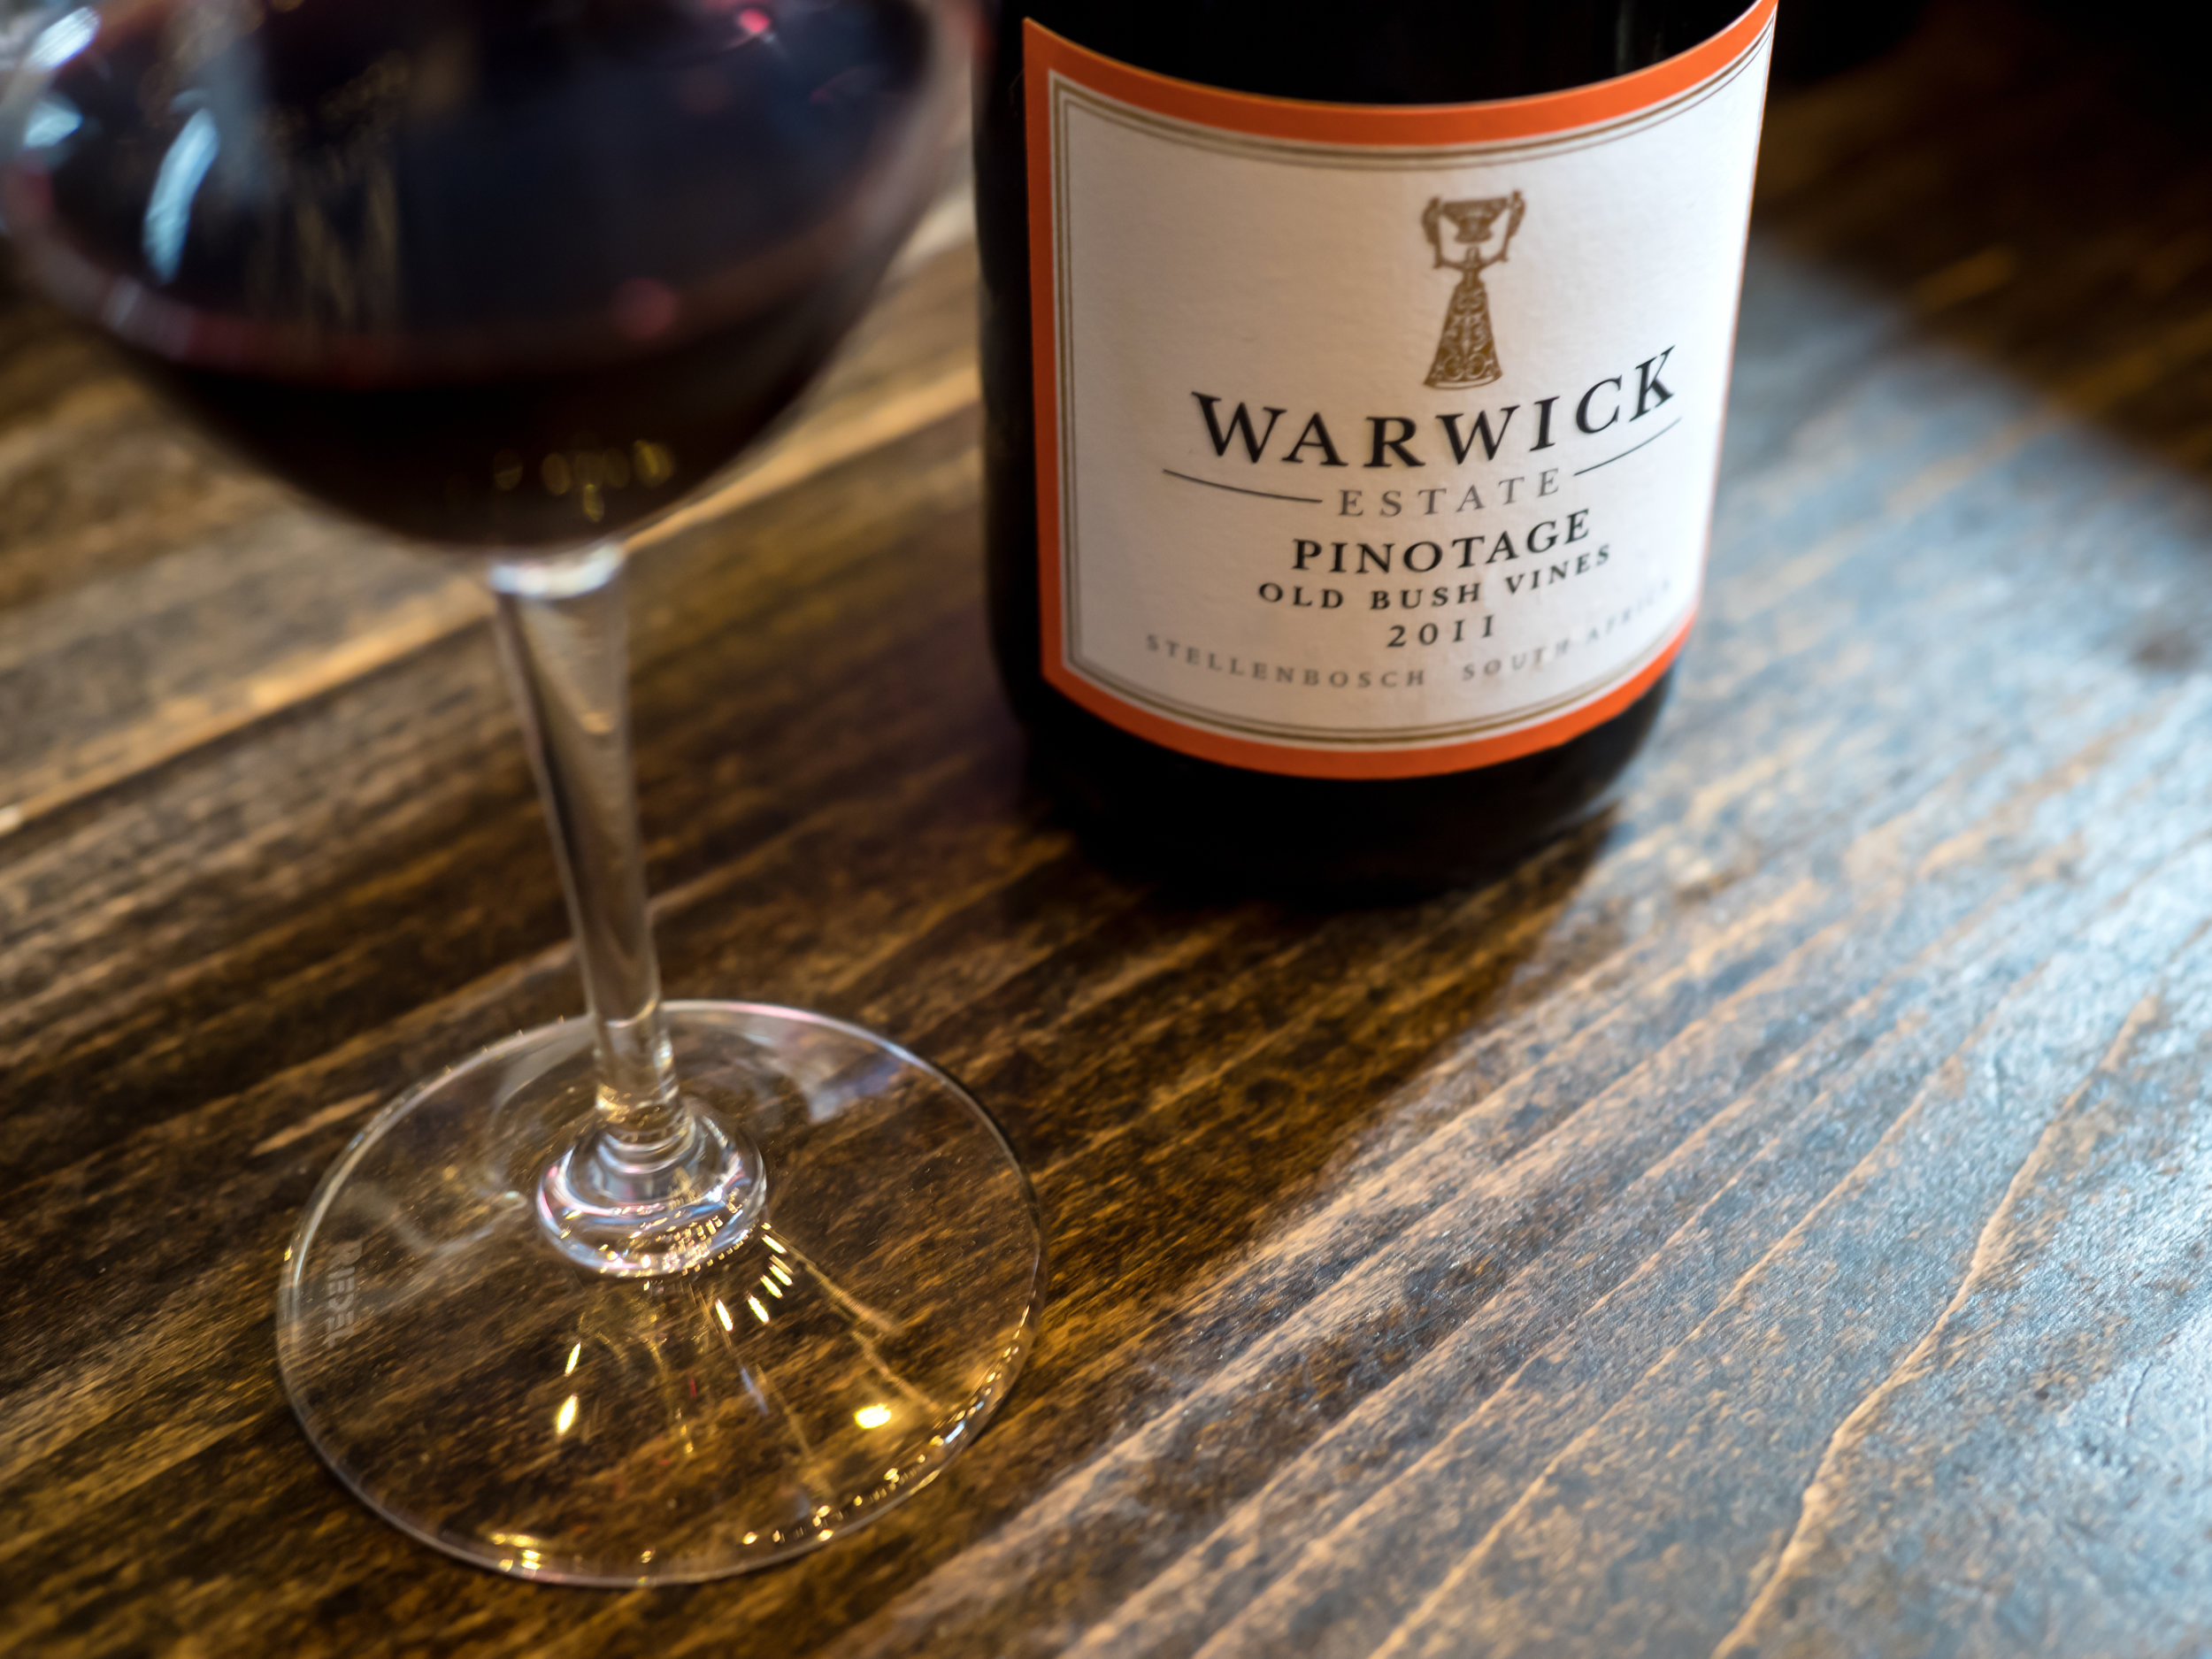 Musings by the Glass - Pig and the Lady Ho Farms Dinner - Warwick Pinotage South Africa